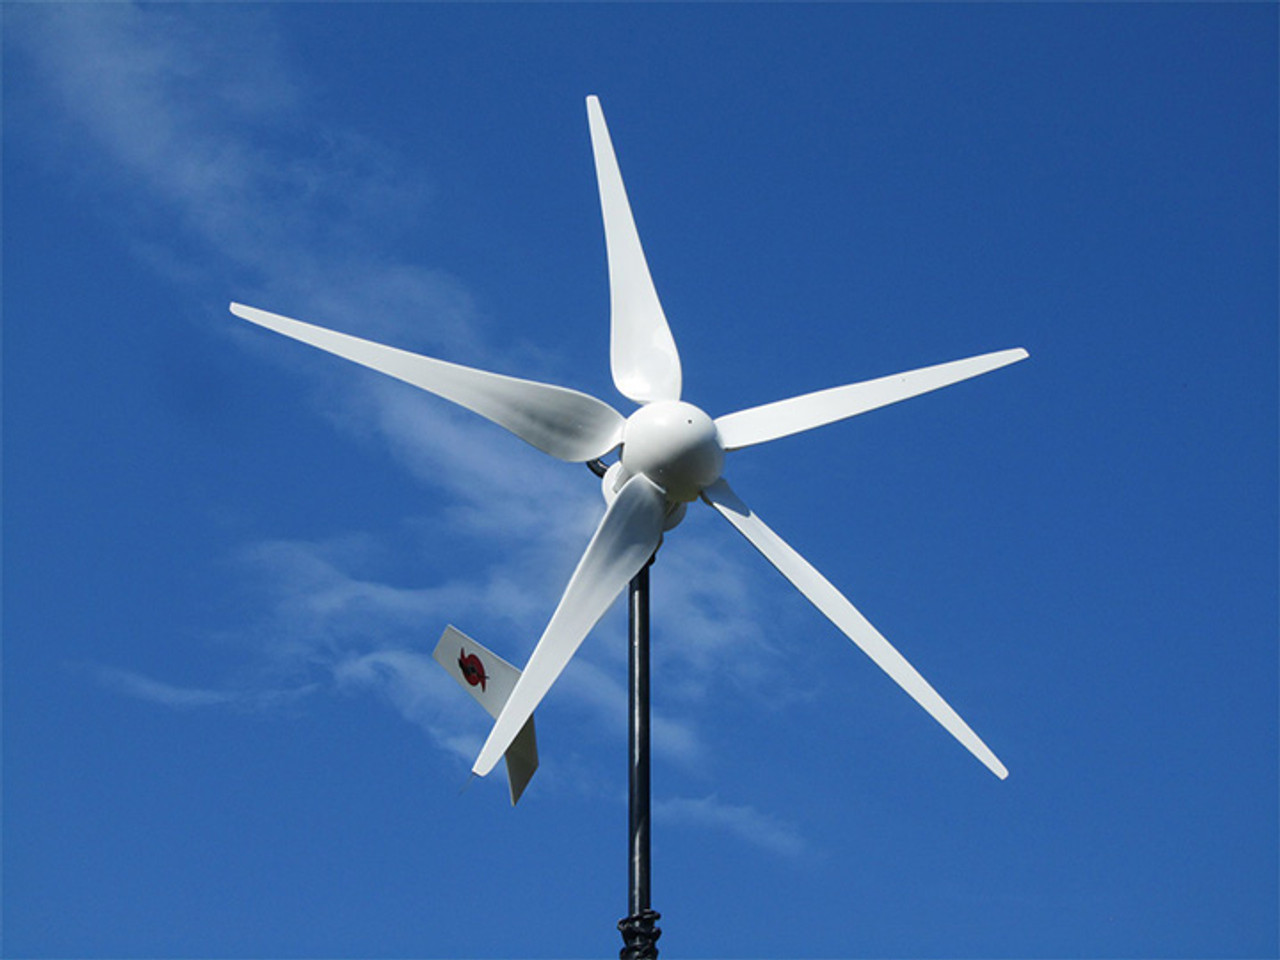 Hurricane Vector Wind Turbine Generator Kit 1000 Watt 48 Volt Max 1500 Watts